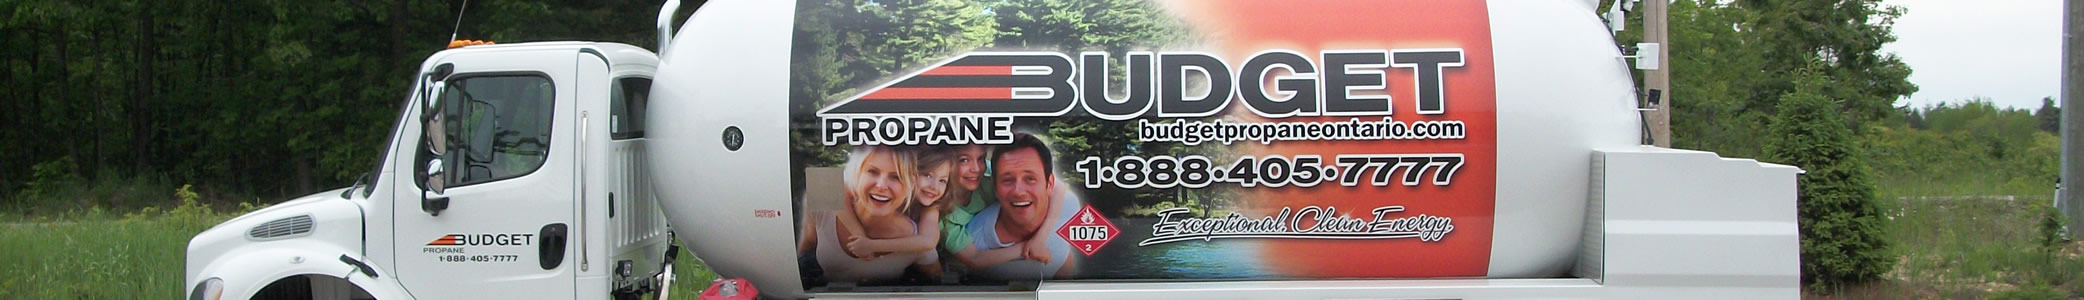 Budget Propane Ontario - About Us